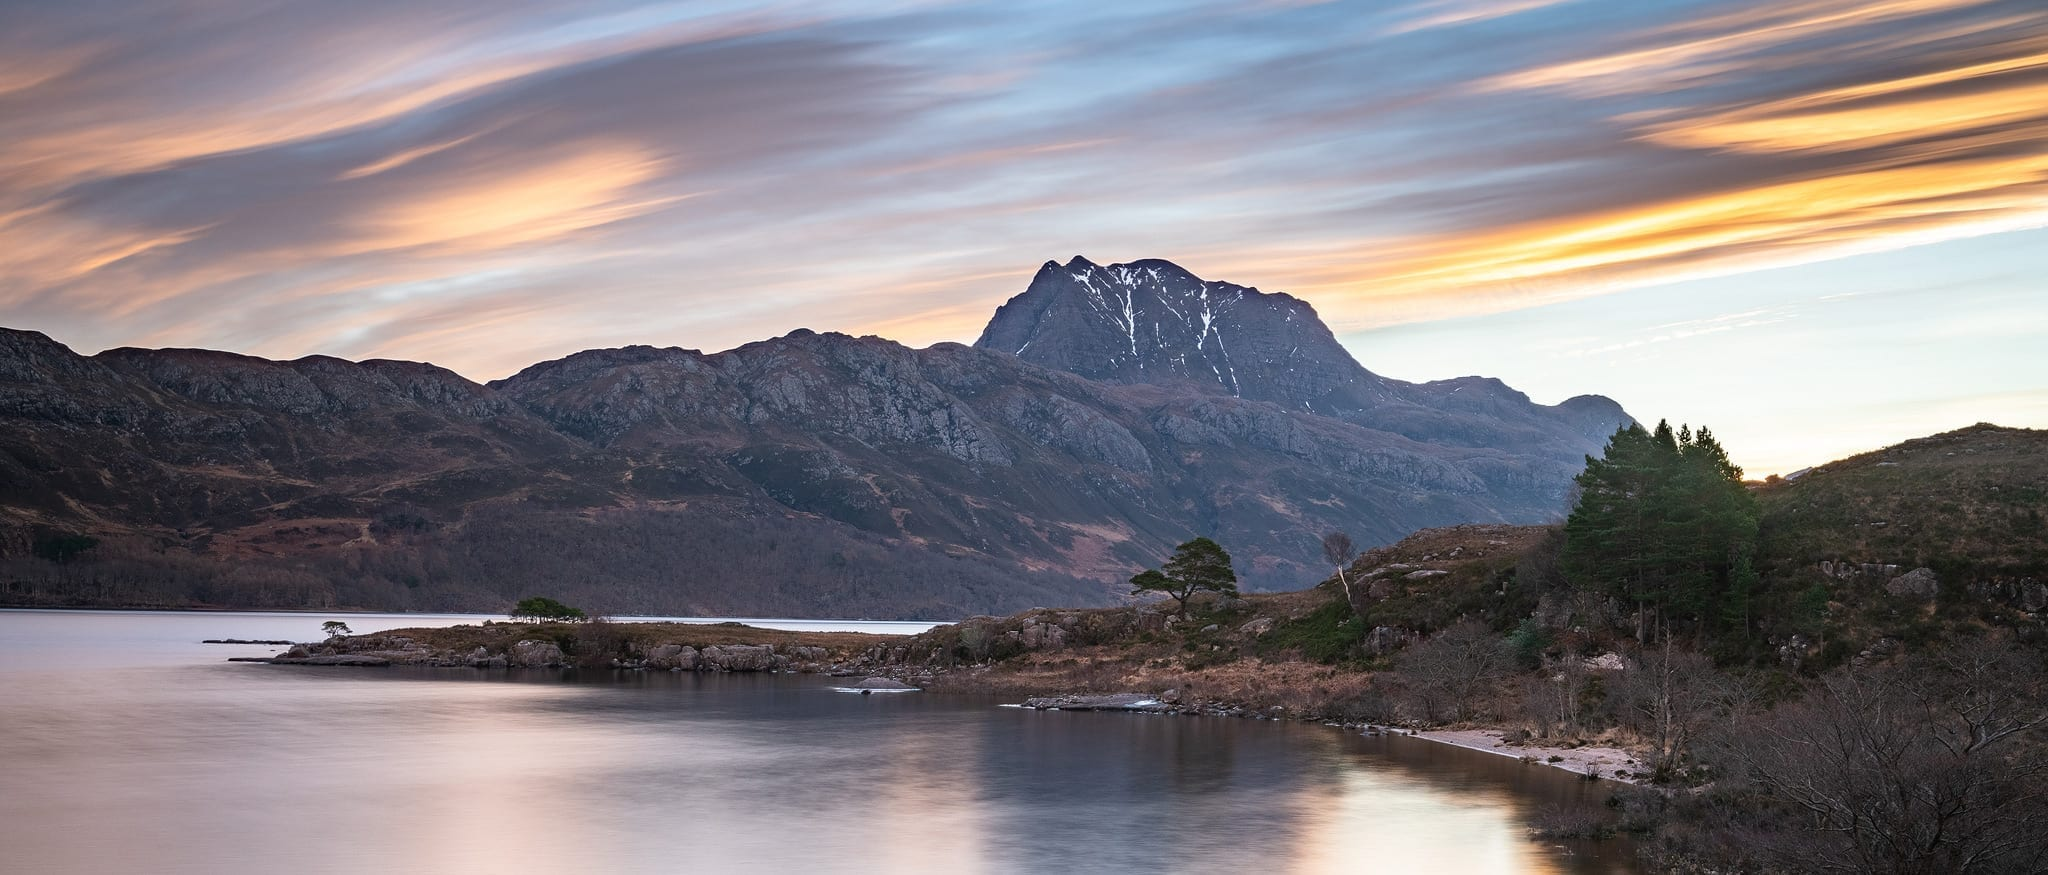 Slioch and Loch Maree Sunrise - Scotland Landscape Photography